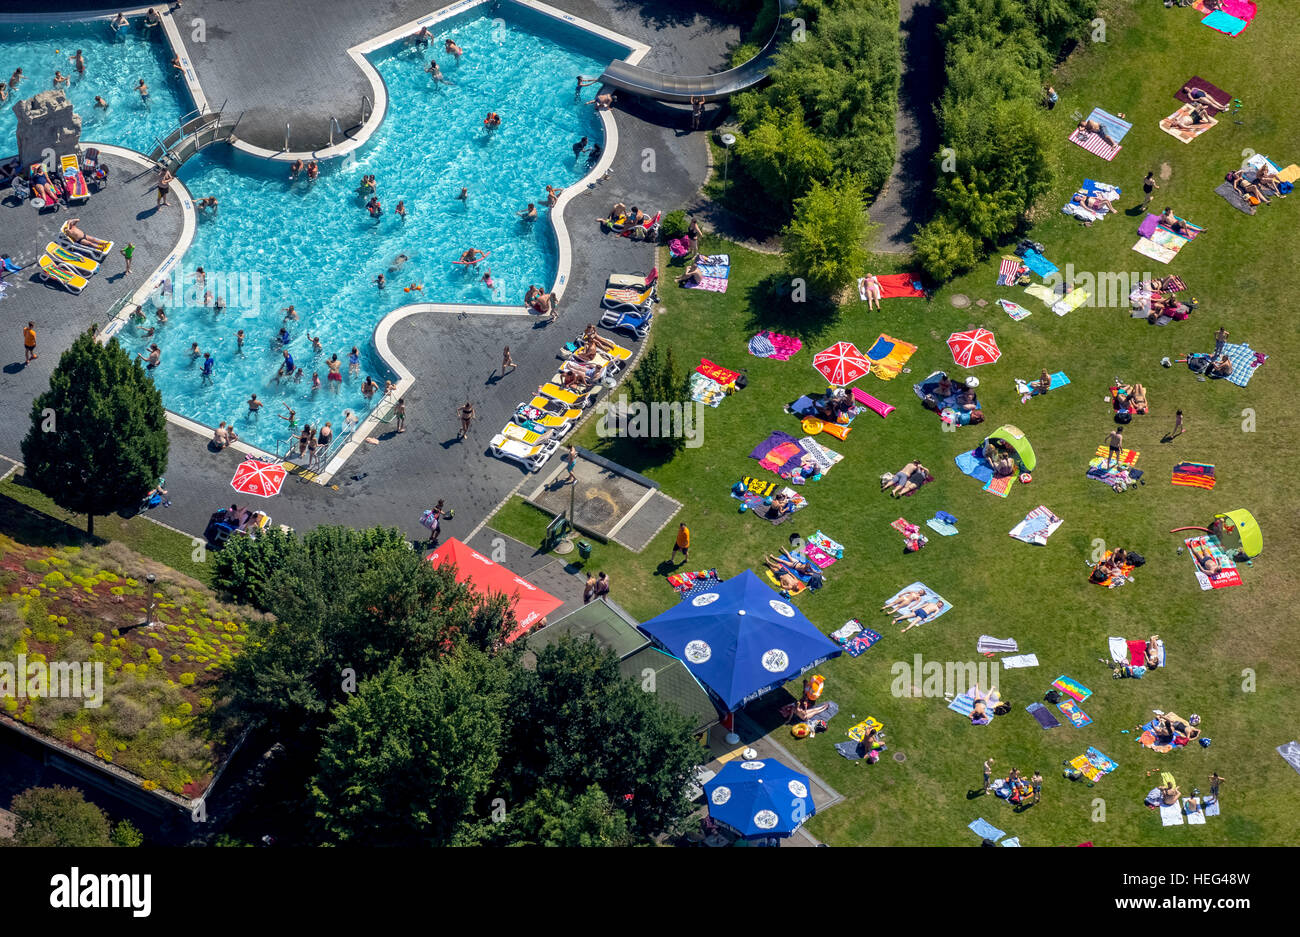 Aerial view, bathers at Atlantis outdoor pool, sunbathing lawn, Dorsten, Ruhr district, North Rhine-Westphalia, - Stock Image